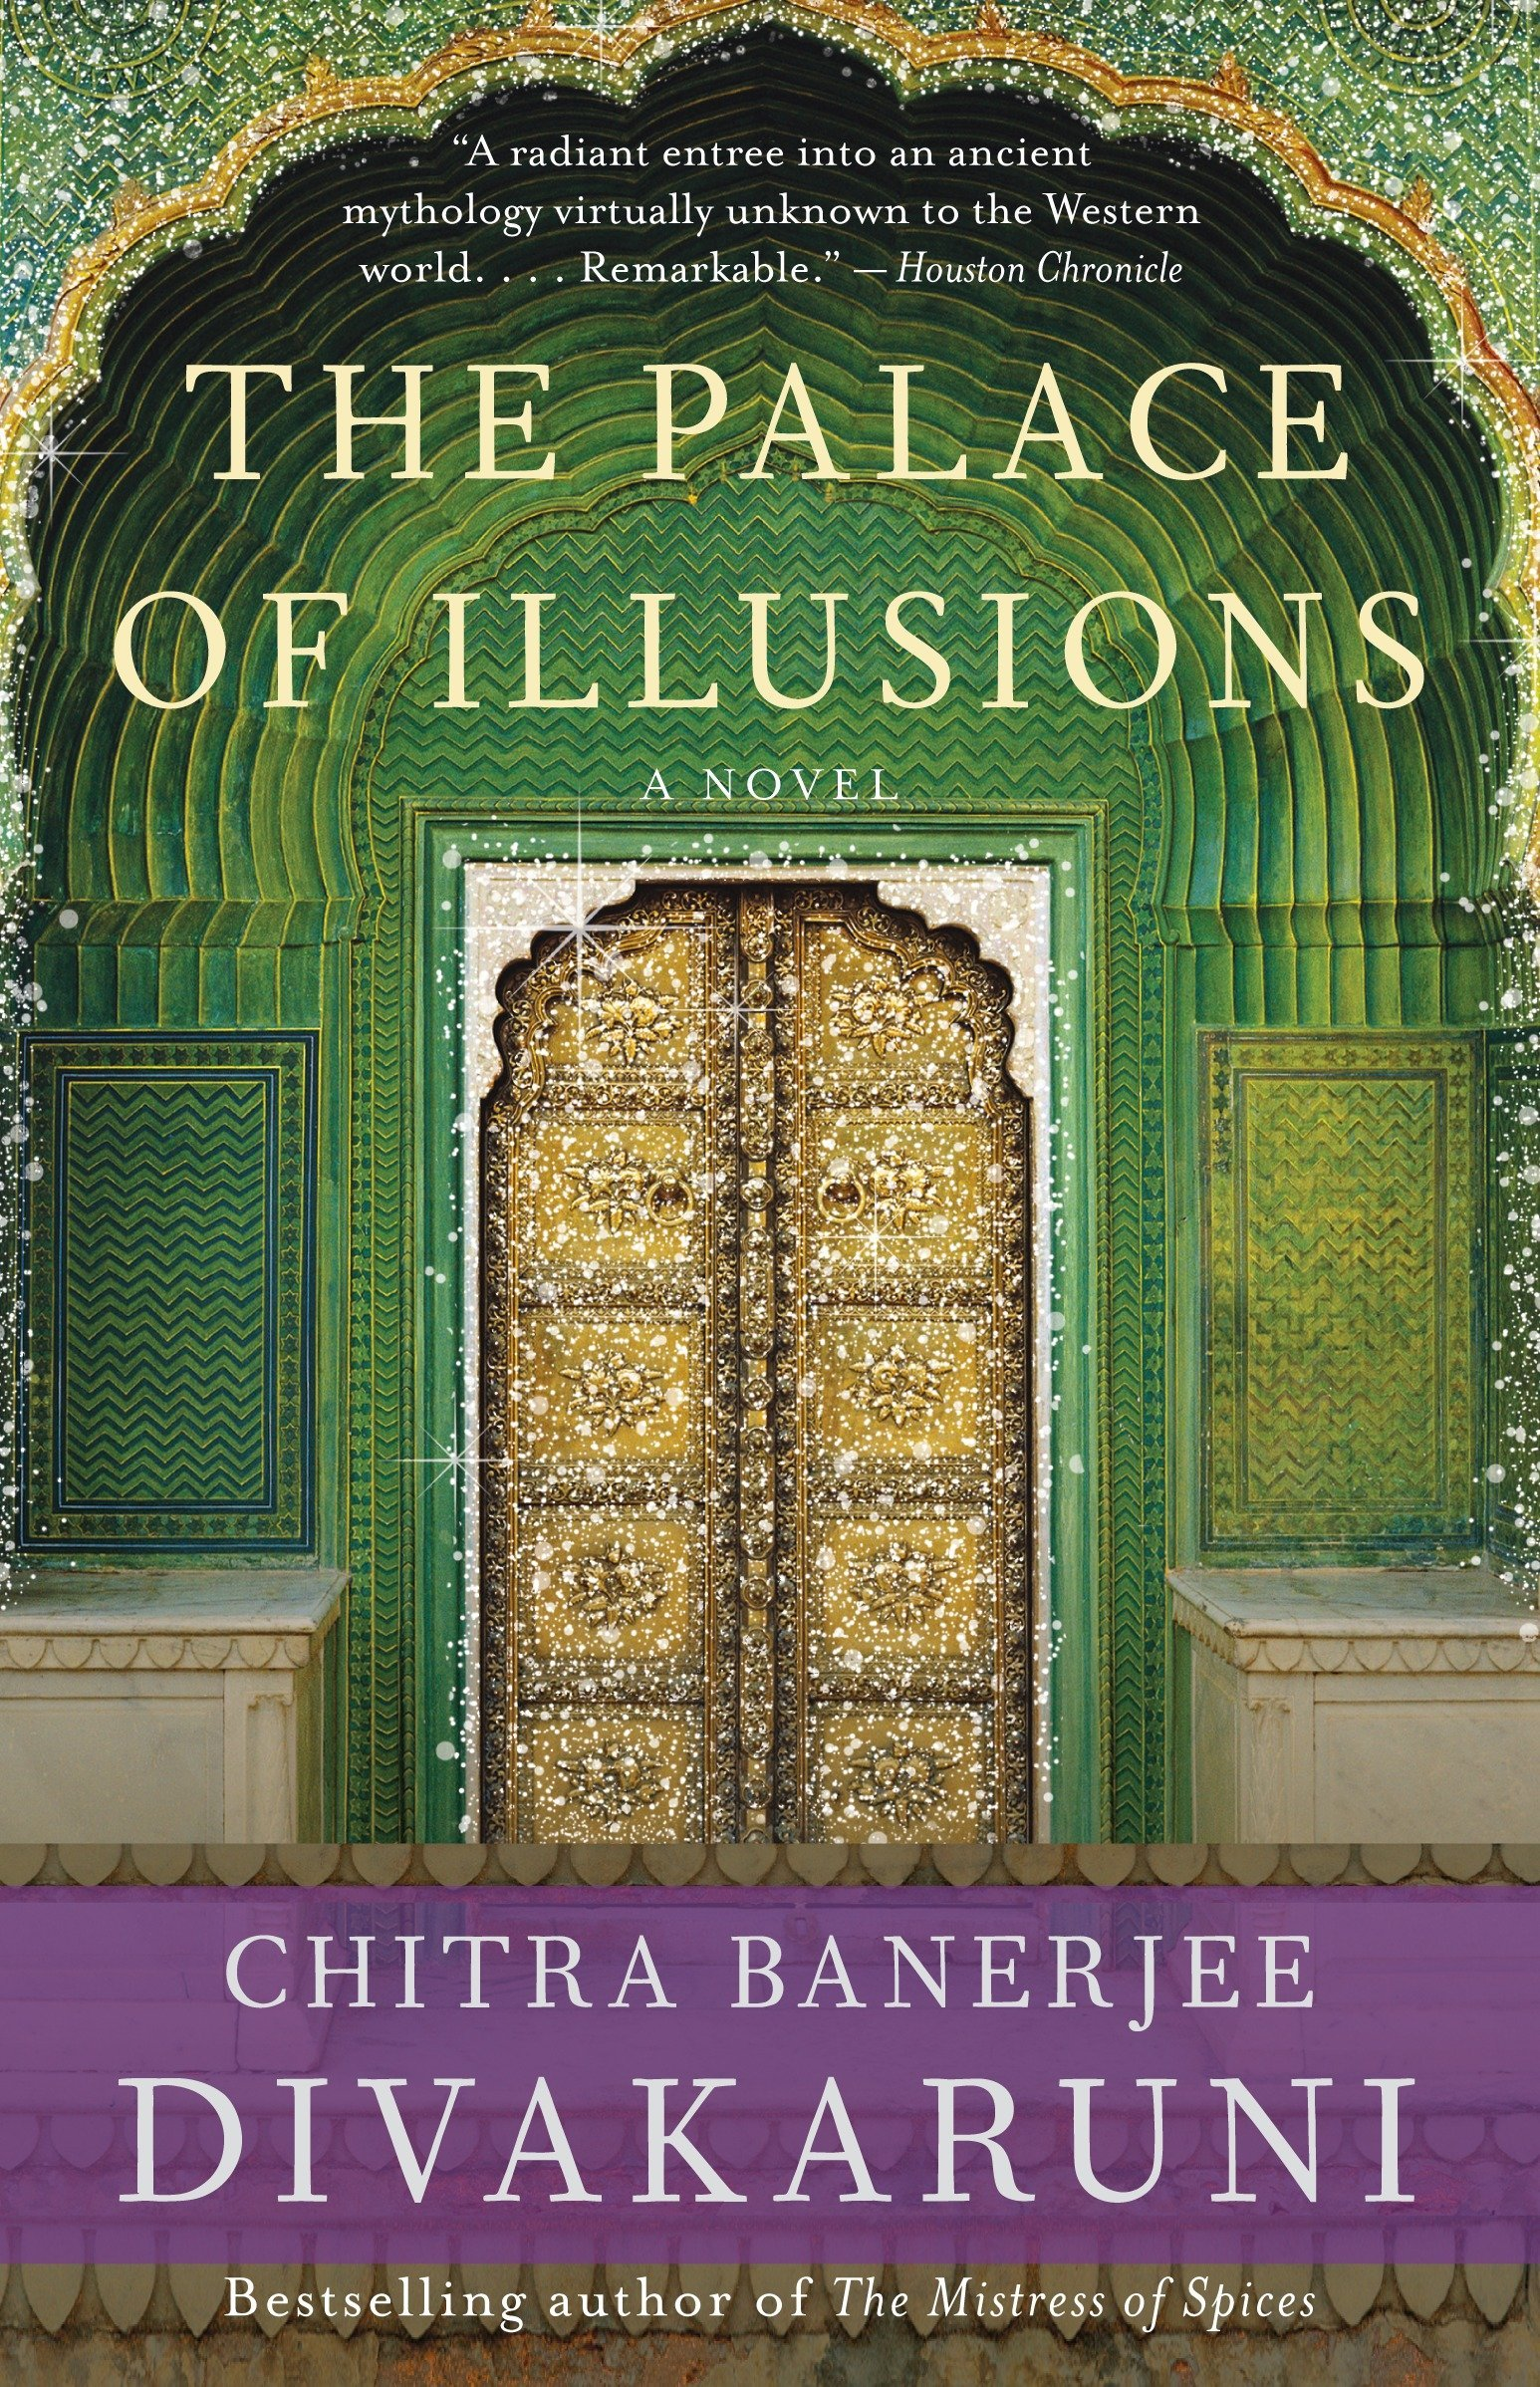 Image result for the palace of illusions